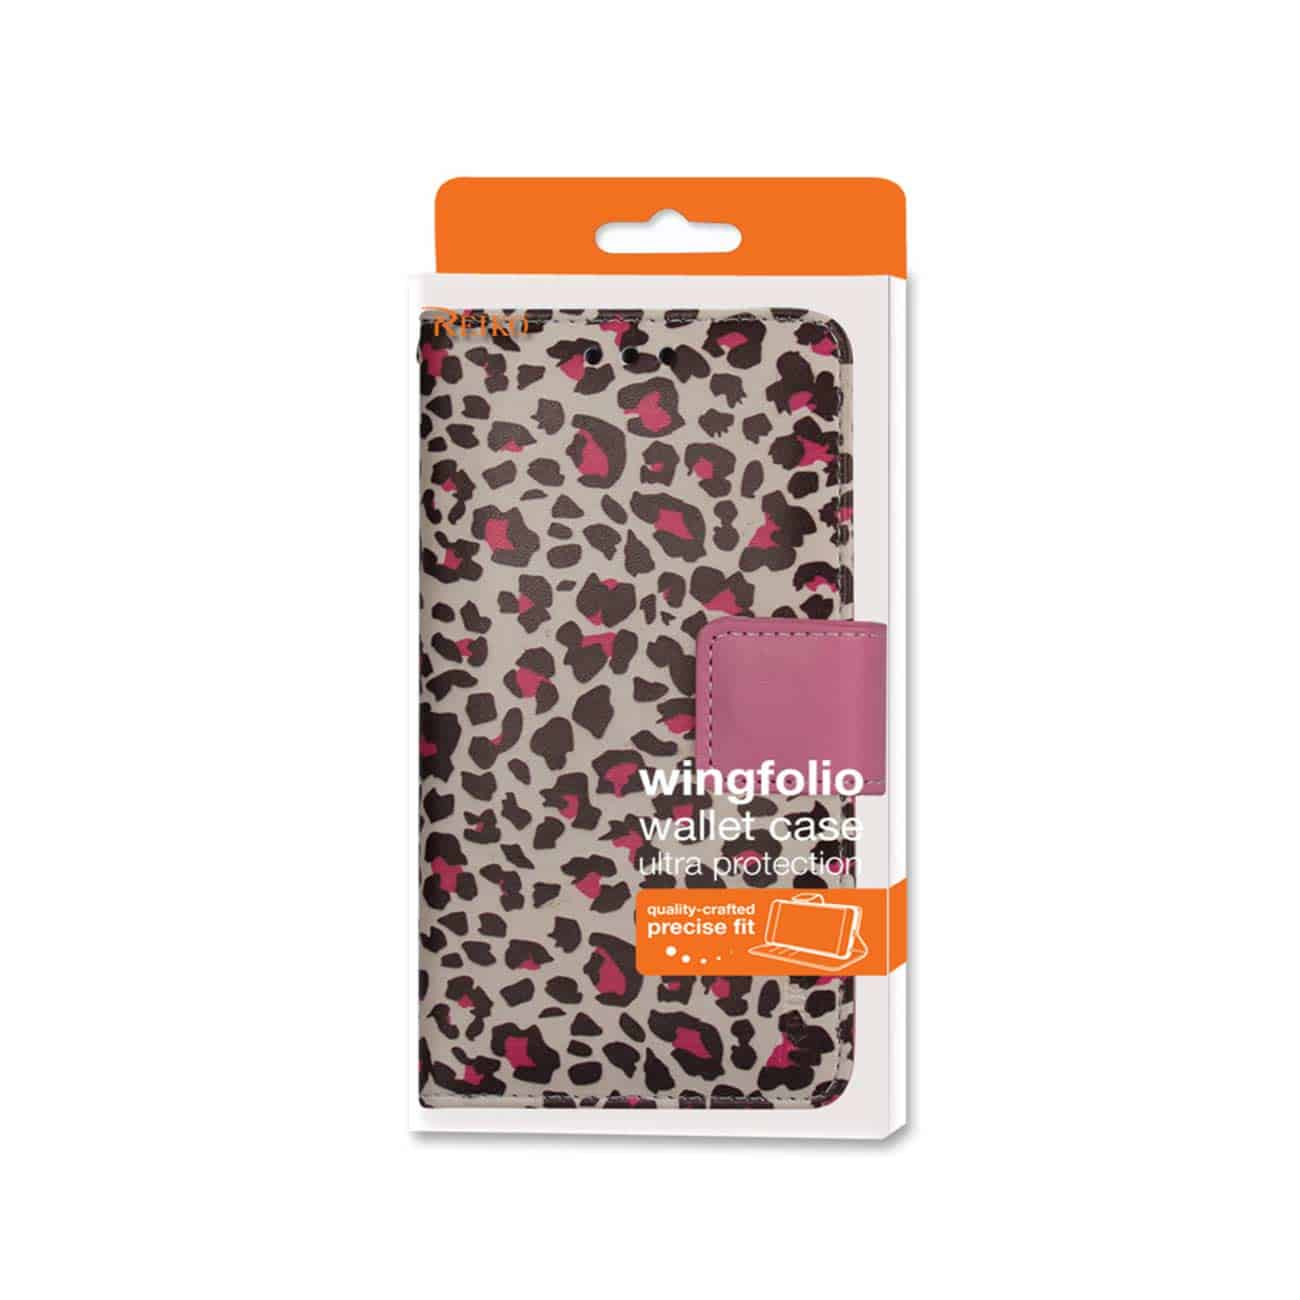 SAMSUNG GALAXY NOTE 4 3-IN-1 ANIMAL LEOPARD PRINT WALLET CASE IN HOT PINK